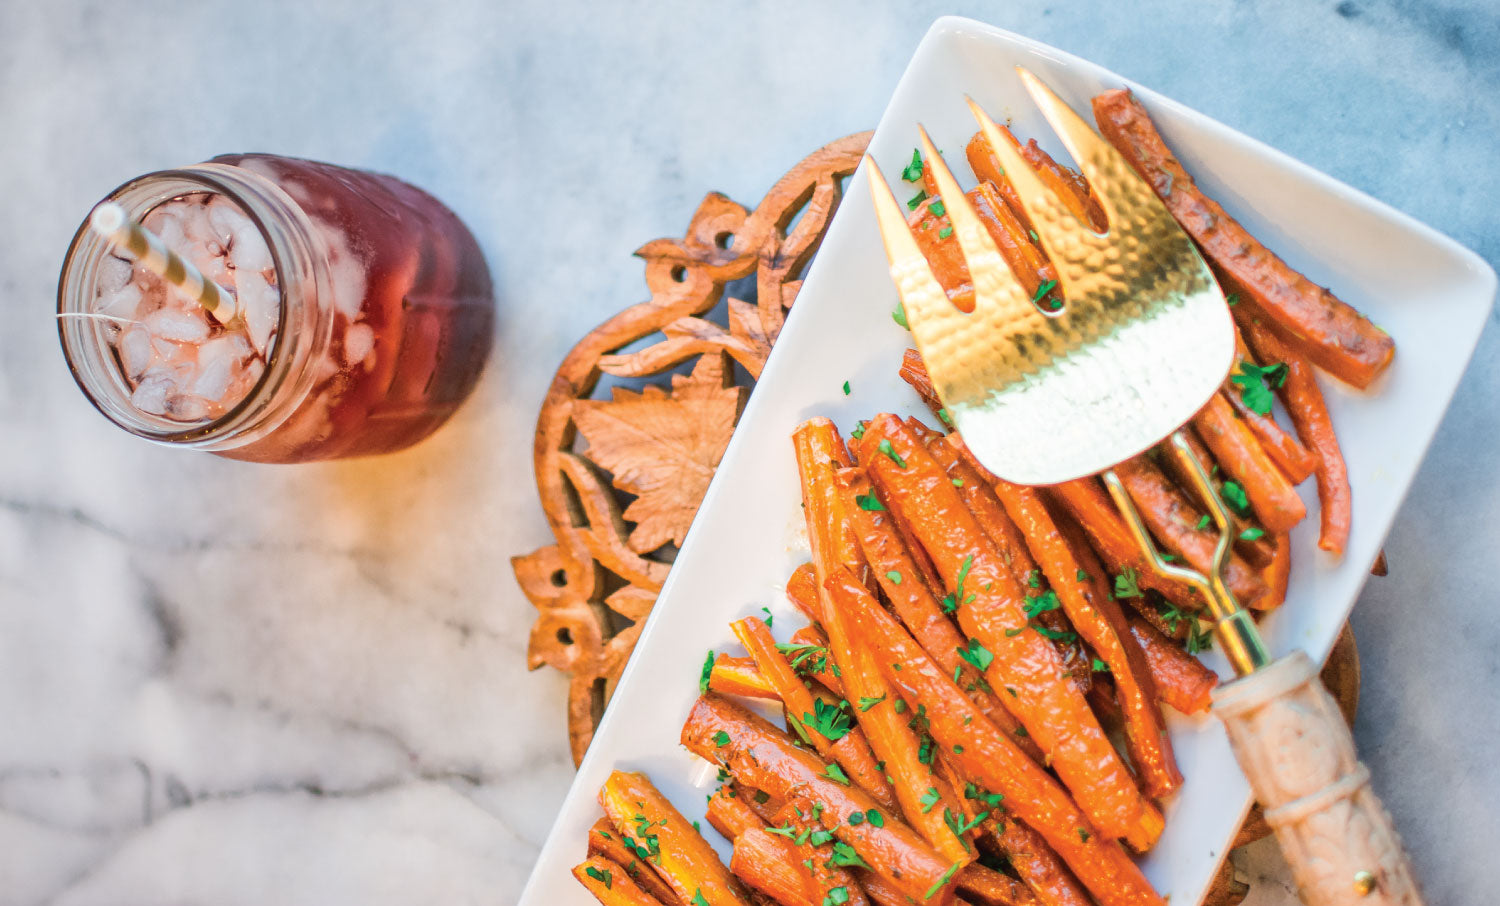 Roasted Carrots and Southern Breeze Sweet Tea in a Mason Jar